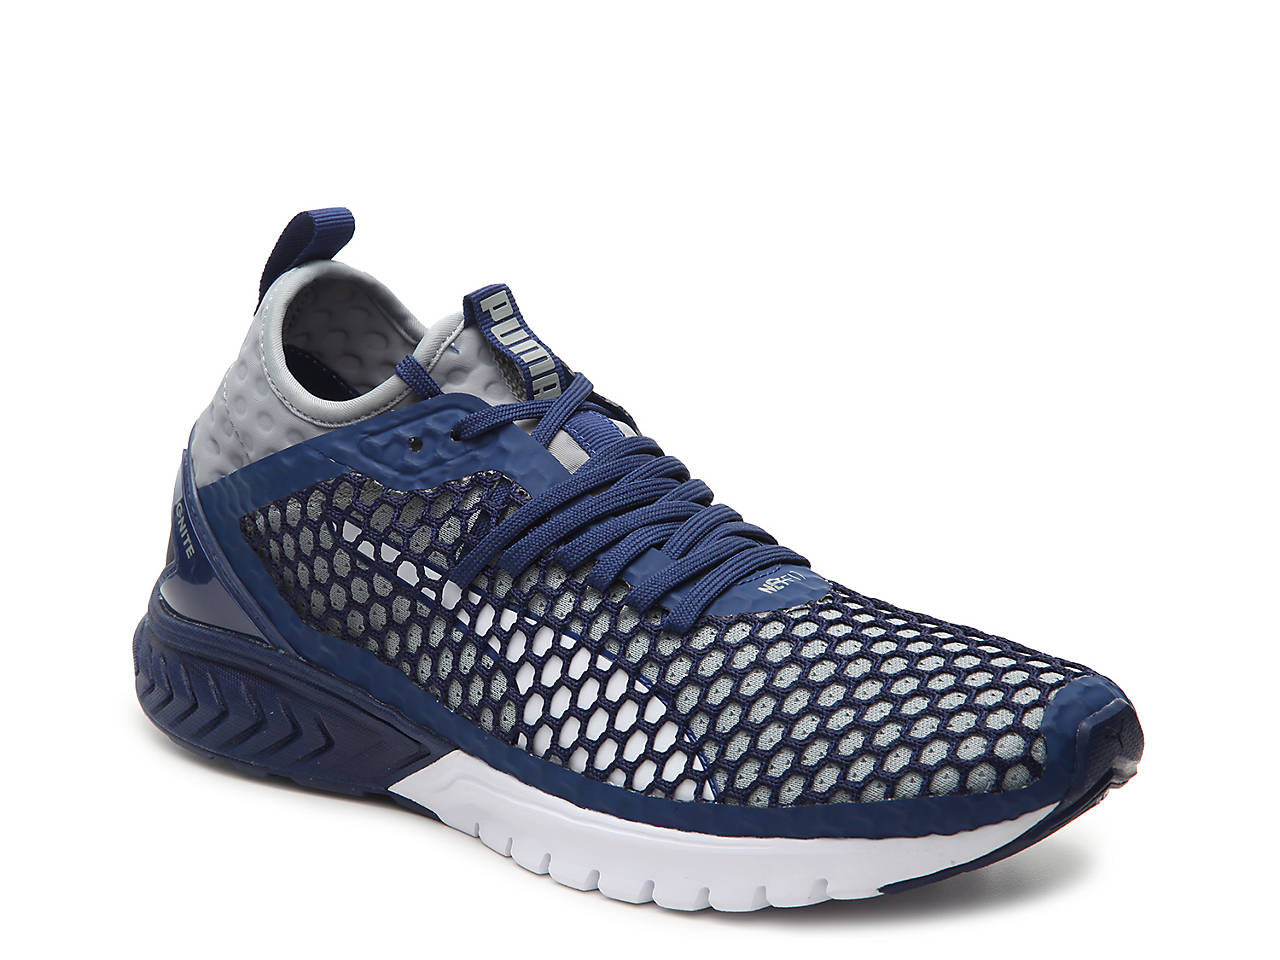 Puma Ignite Dual Netfit Wn S Black Running Shoes cheap brand new unisex free shipping visa payment sale wholesale price countdown package cheap online Qg1nFX91He